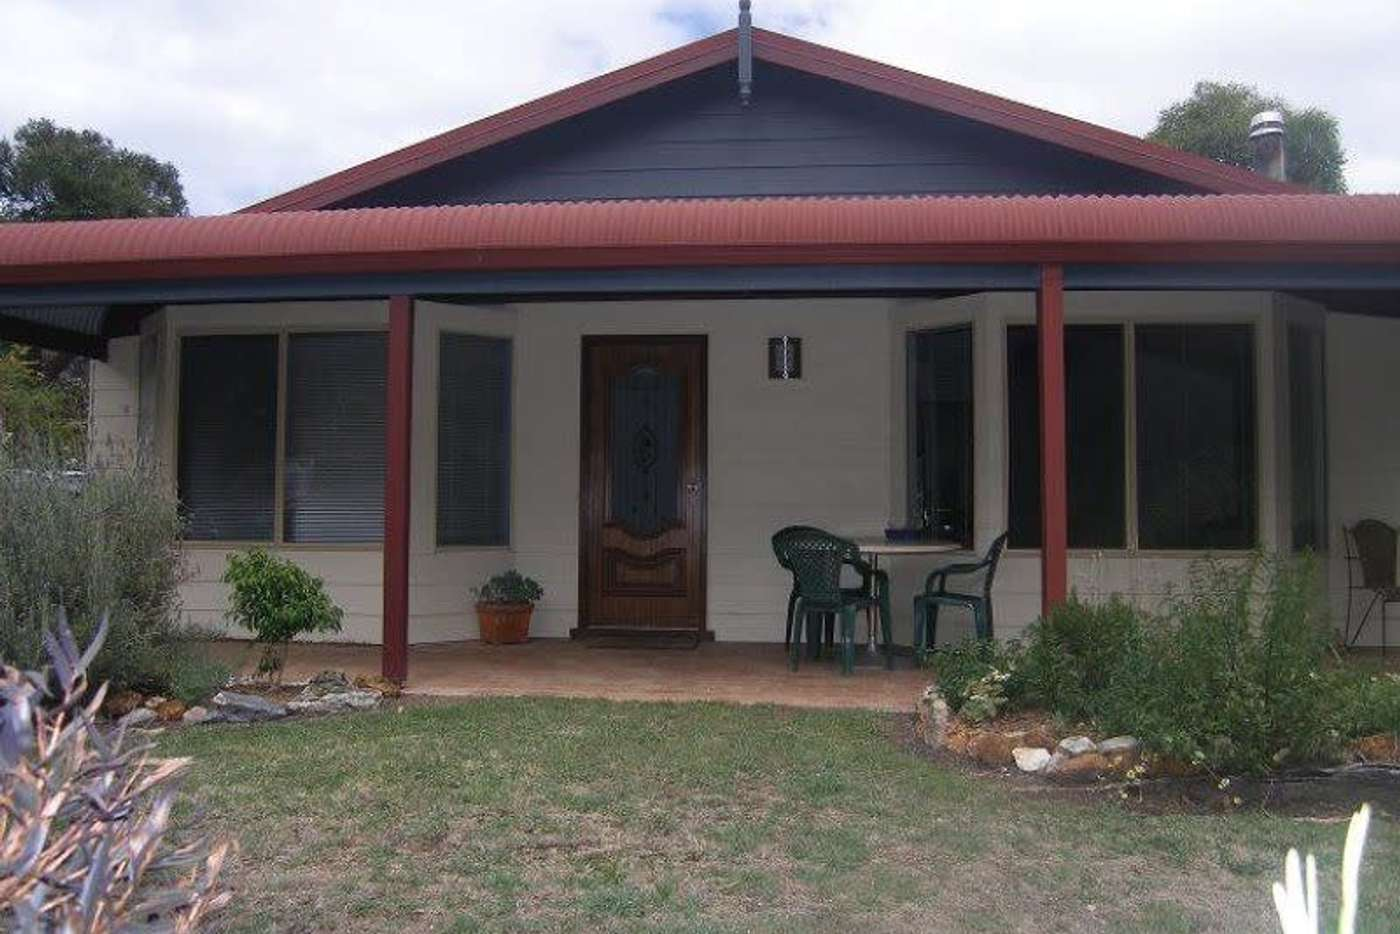 Main view of Homely house listing, 50 Buckley St, Denmark WA 6333